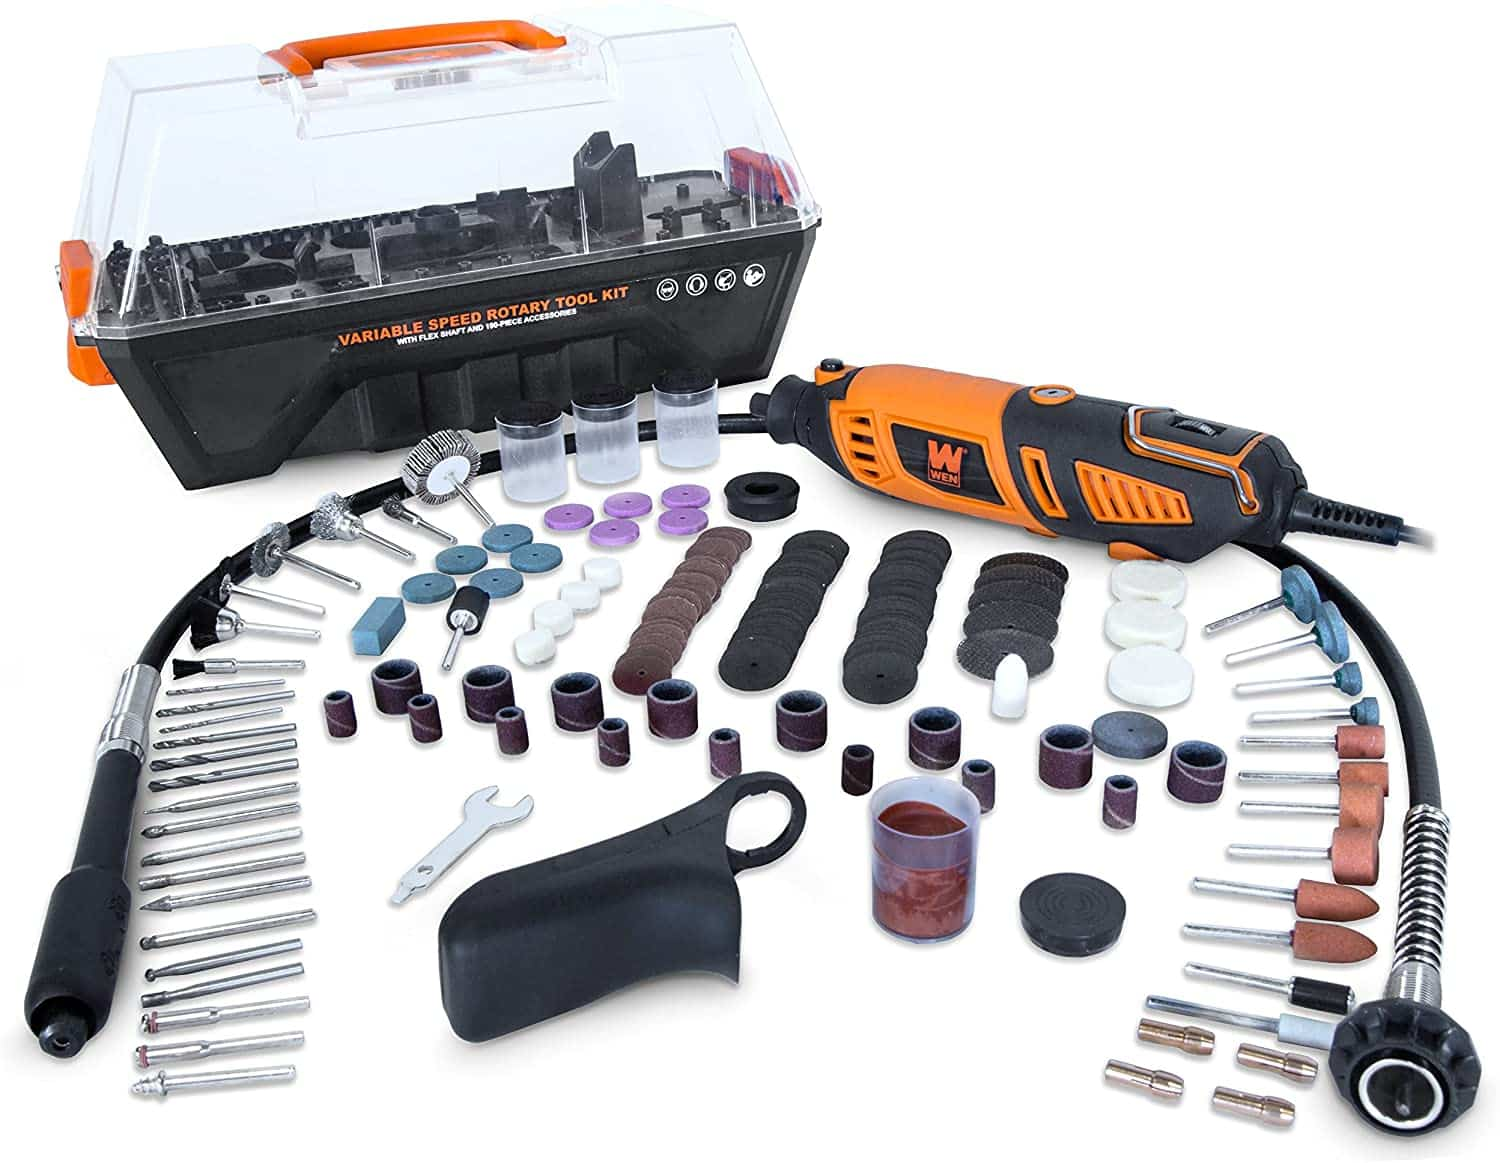 WEN 23190 1.3-Amp Steady-Grip Rotary Tool Kit